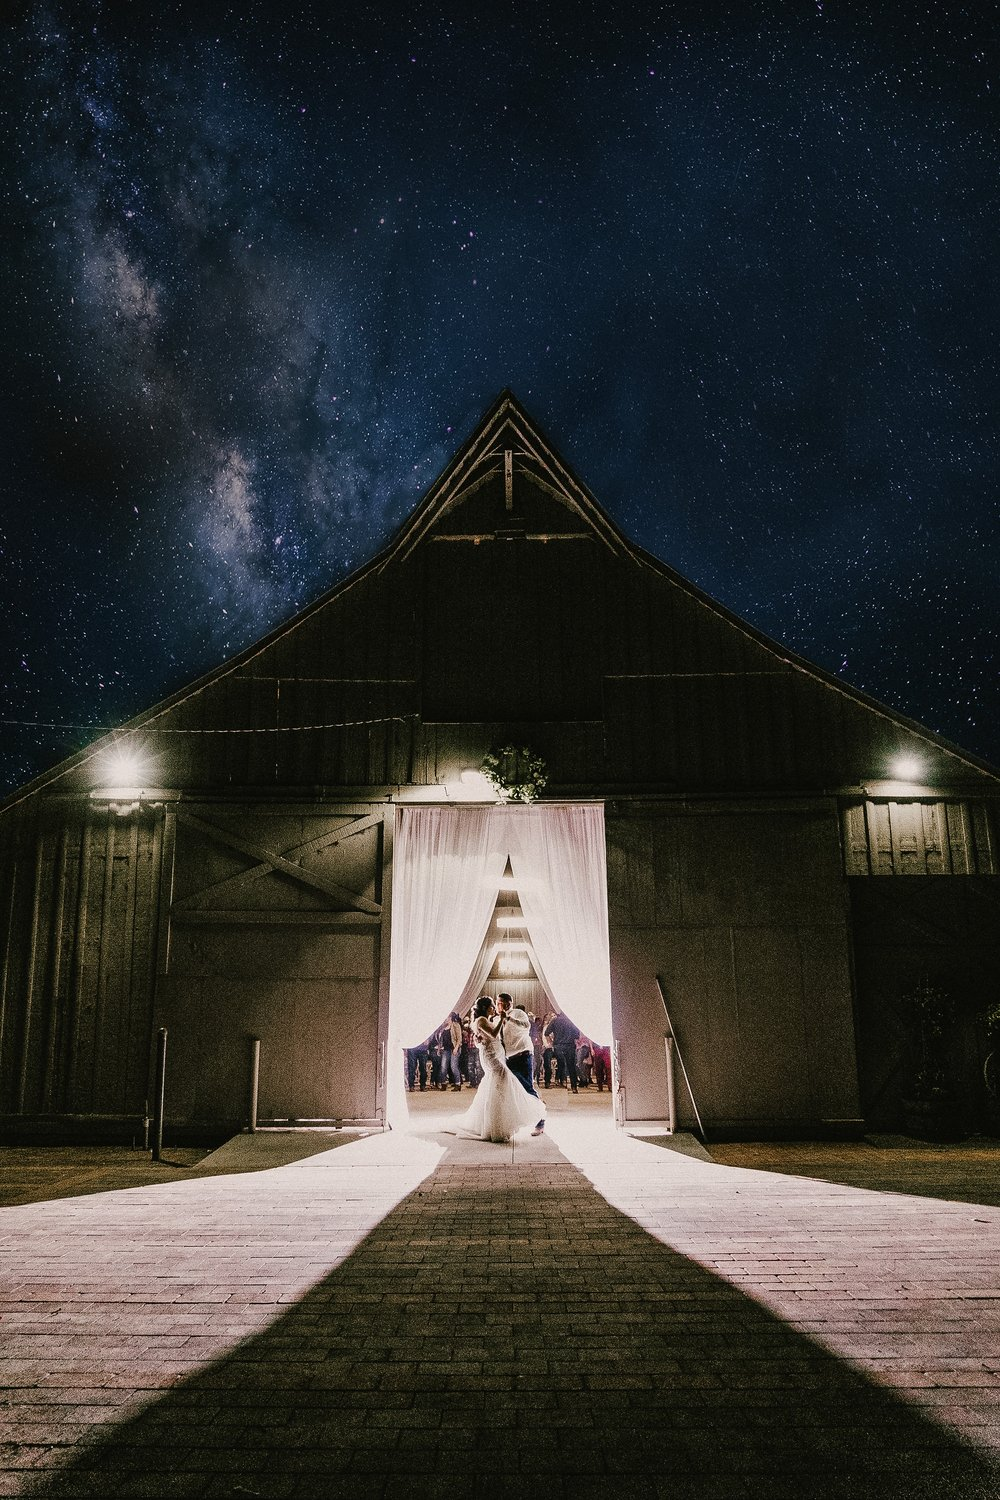 monterey-wedding-photographer-san-pedro-ranch-barn-wedding-crystal-ivan-min.jpg